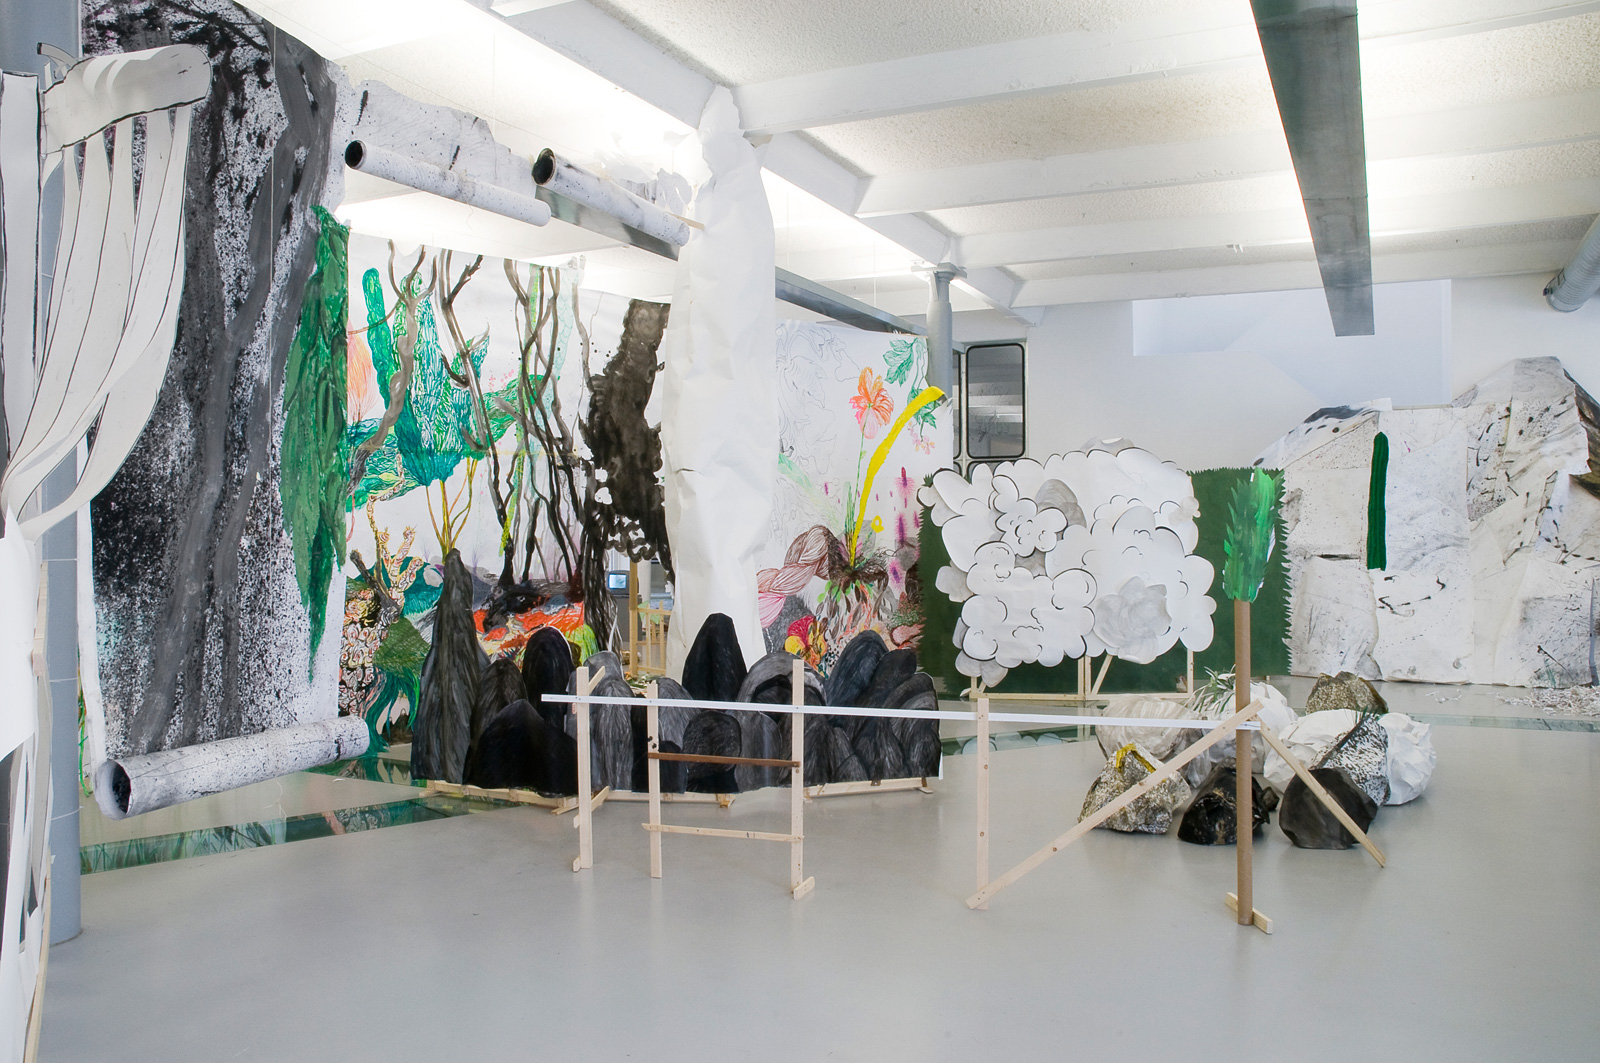 exhibition 'Onder Alle Omstandigheden' (In All Circumstances)